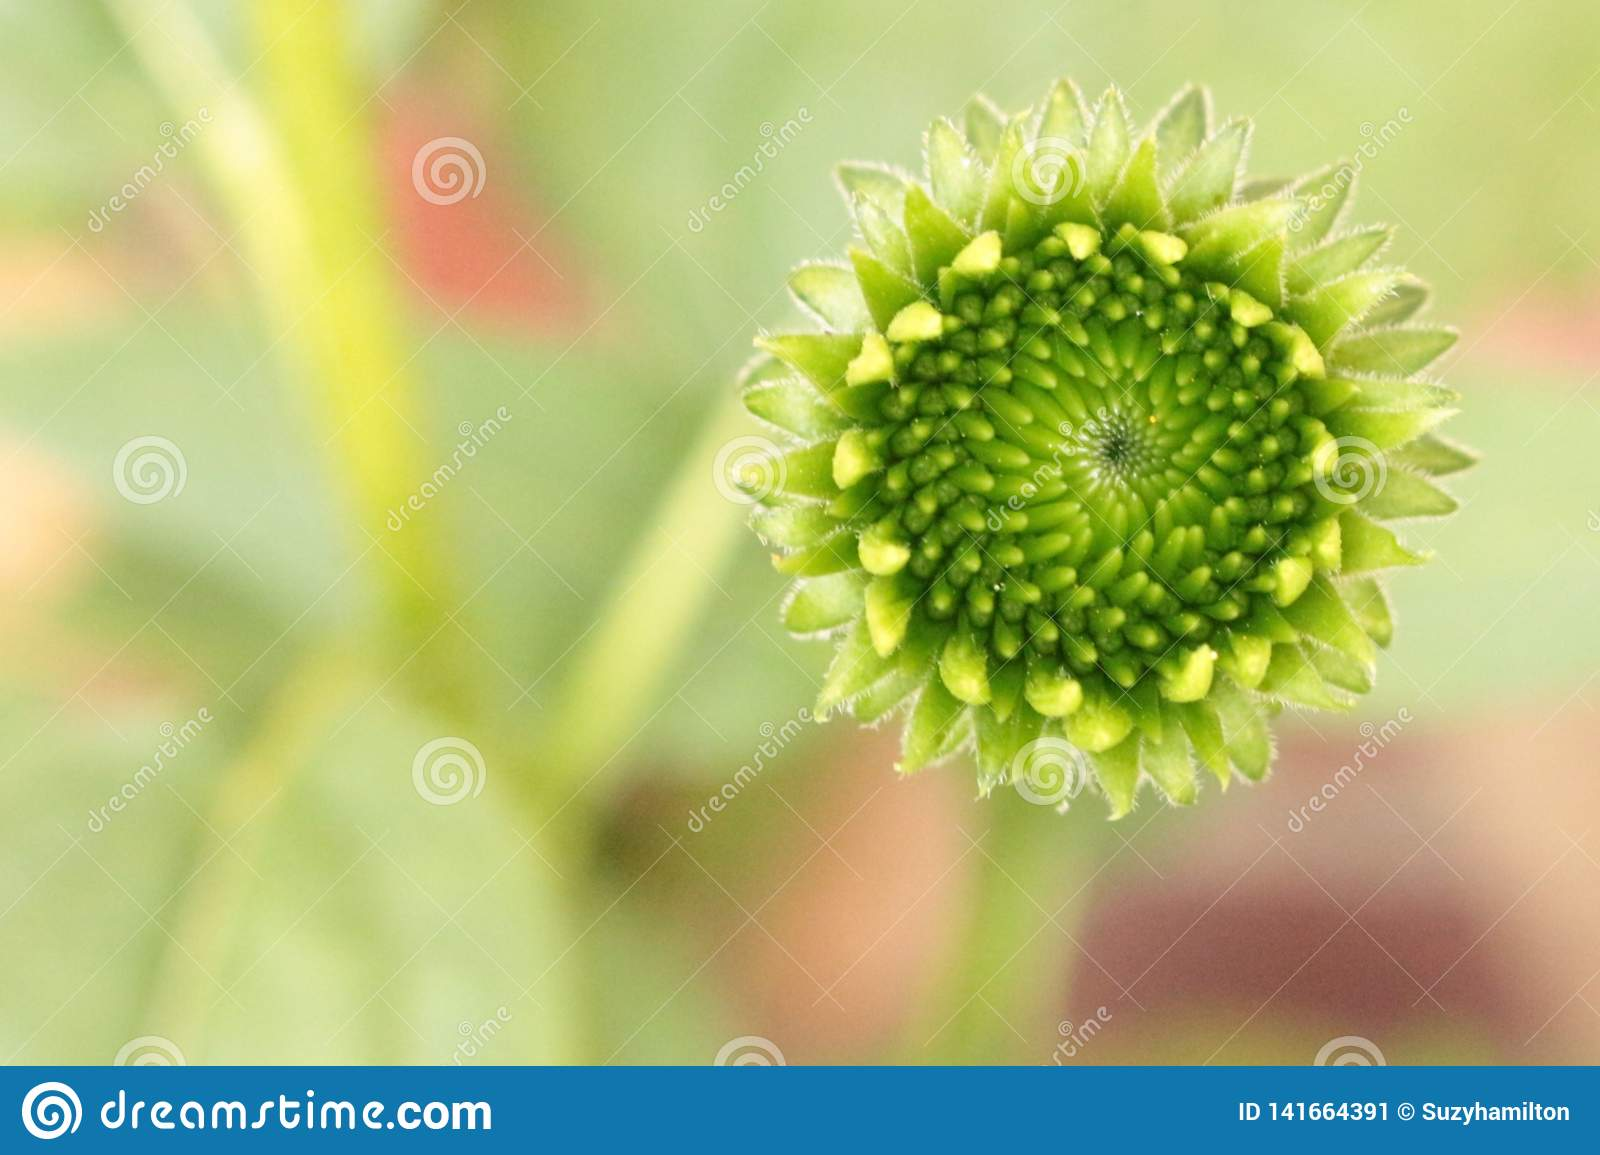 Young Echinacea flower head lime green with a blurred pastel background.